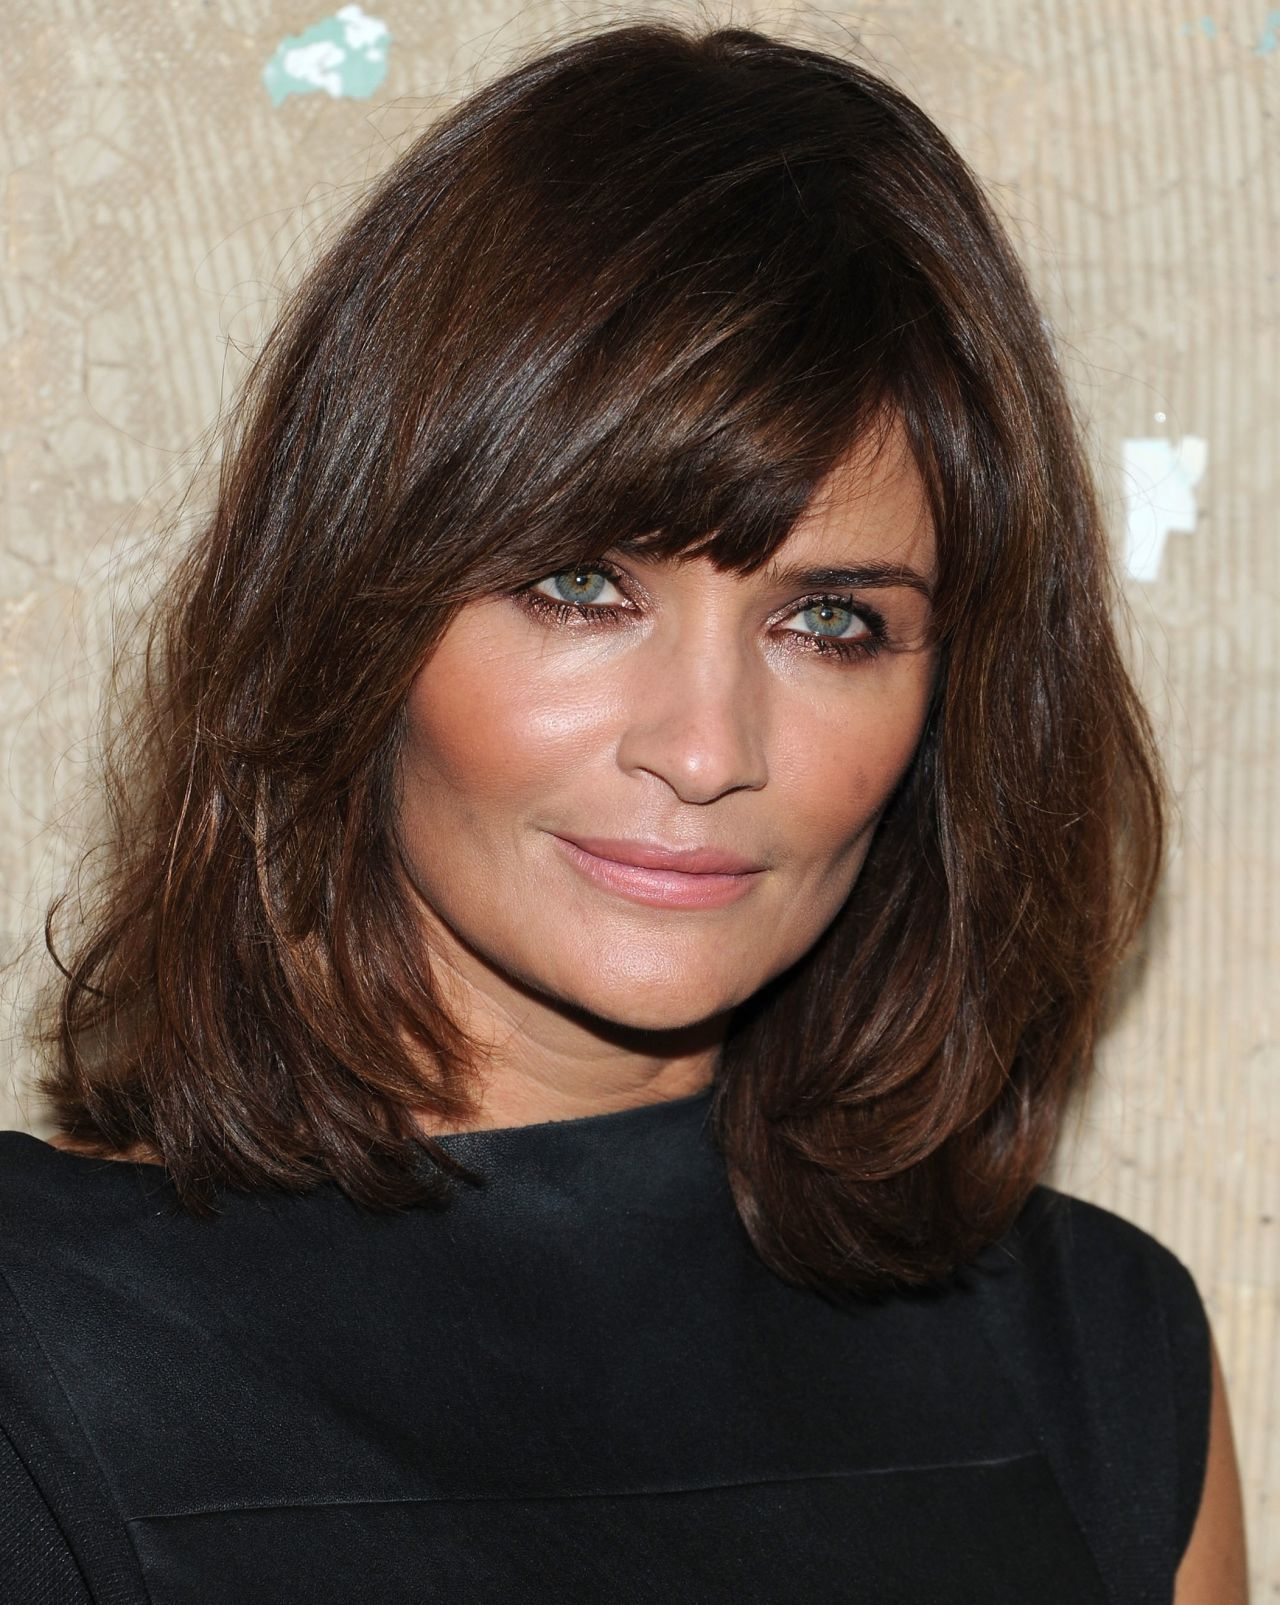 Medium Length Layered Hairstyles With Bangs For Women Over 50 Simple